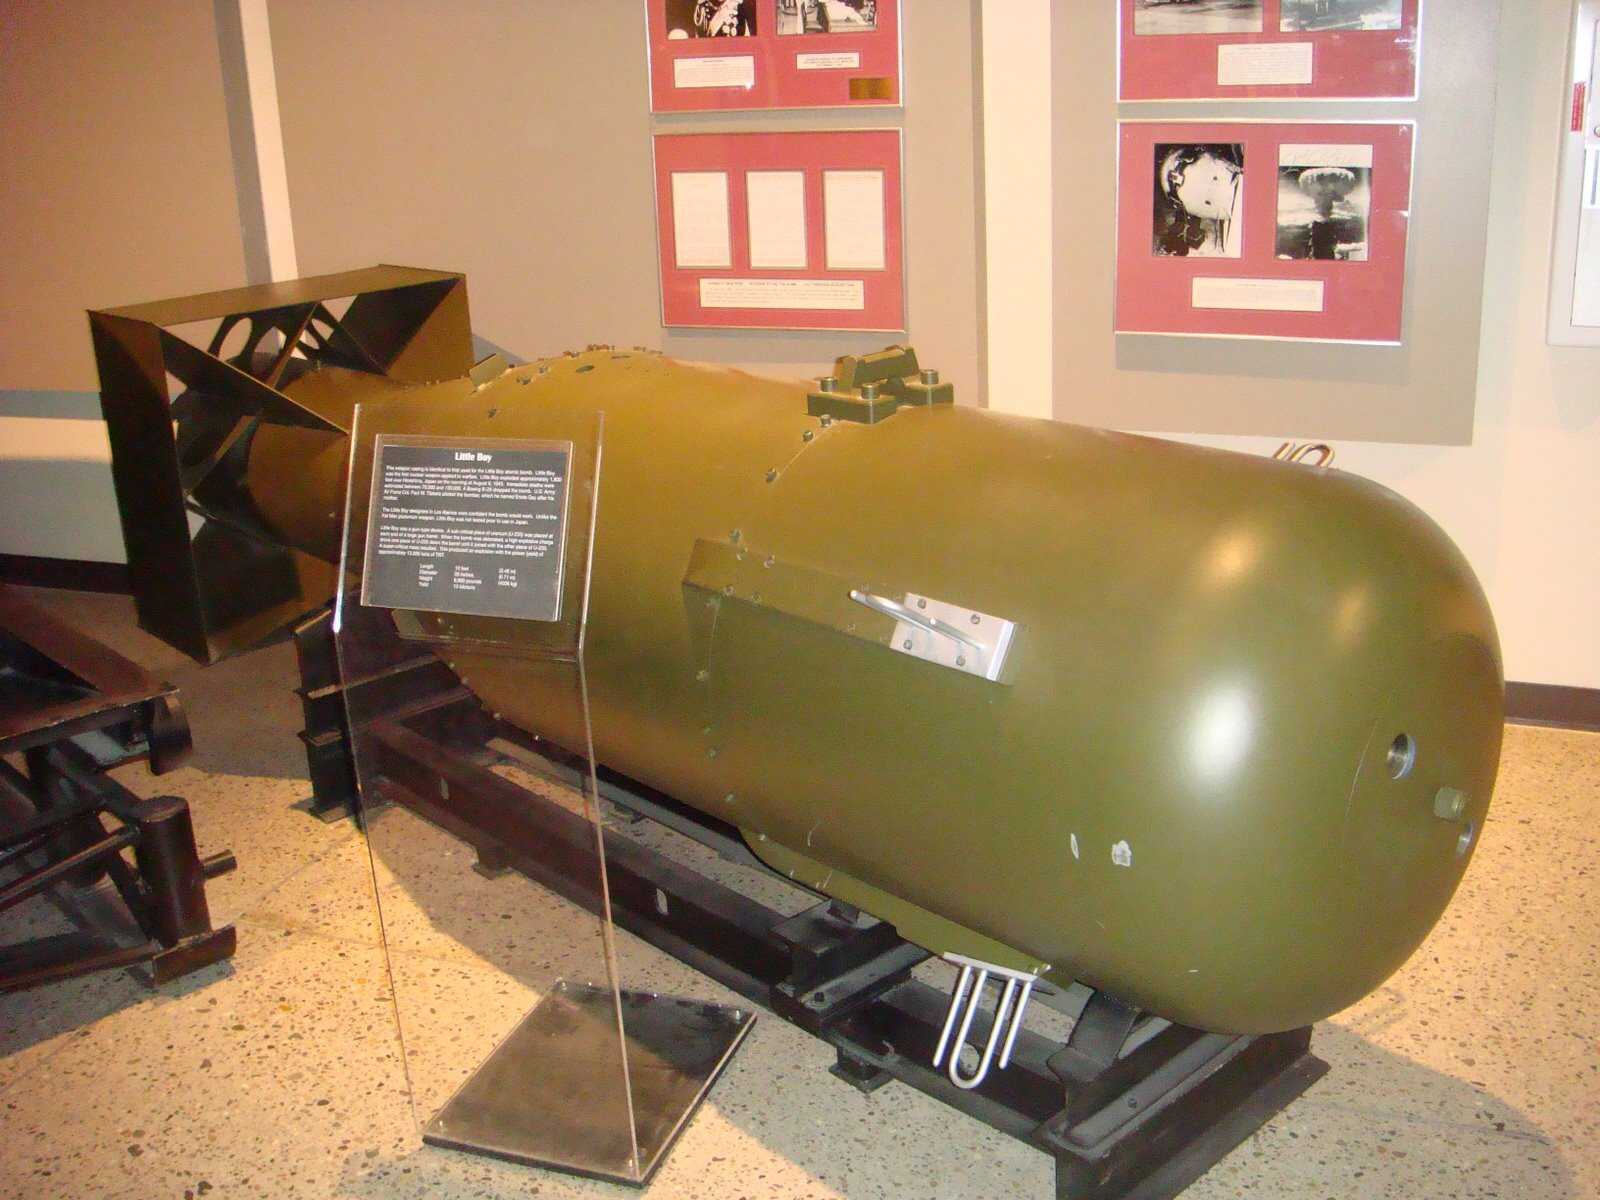 This replica of the Little Boy atomic bomb is displayed at the museum. Photo Credit: https://commons.m.wikimedia.org/wiki/File:Little_Boy,_National_Museum_of_Nuclear_Science_%26_History...